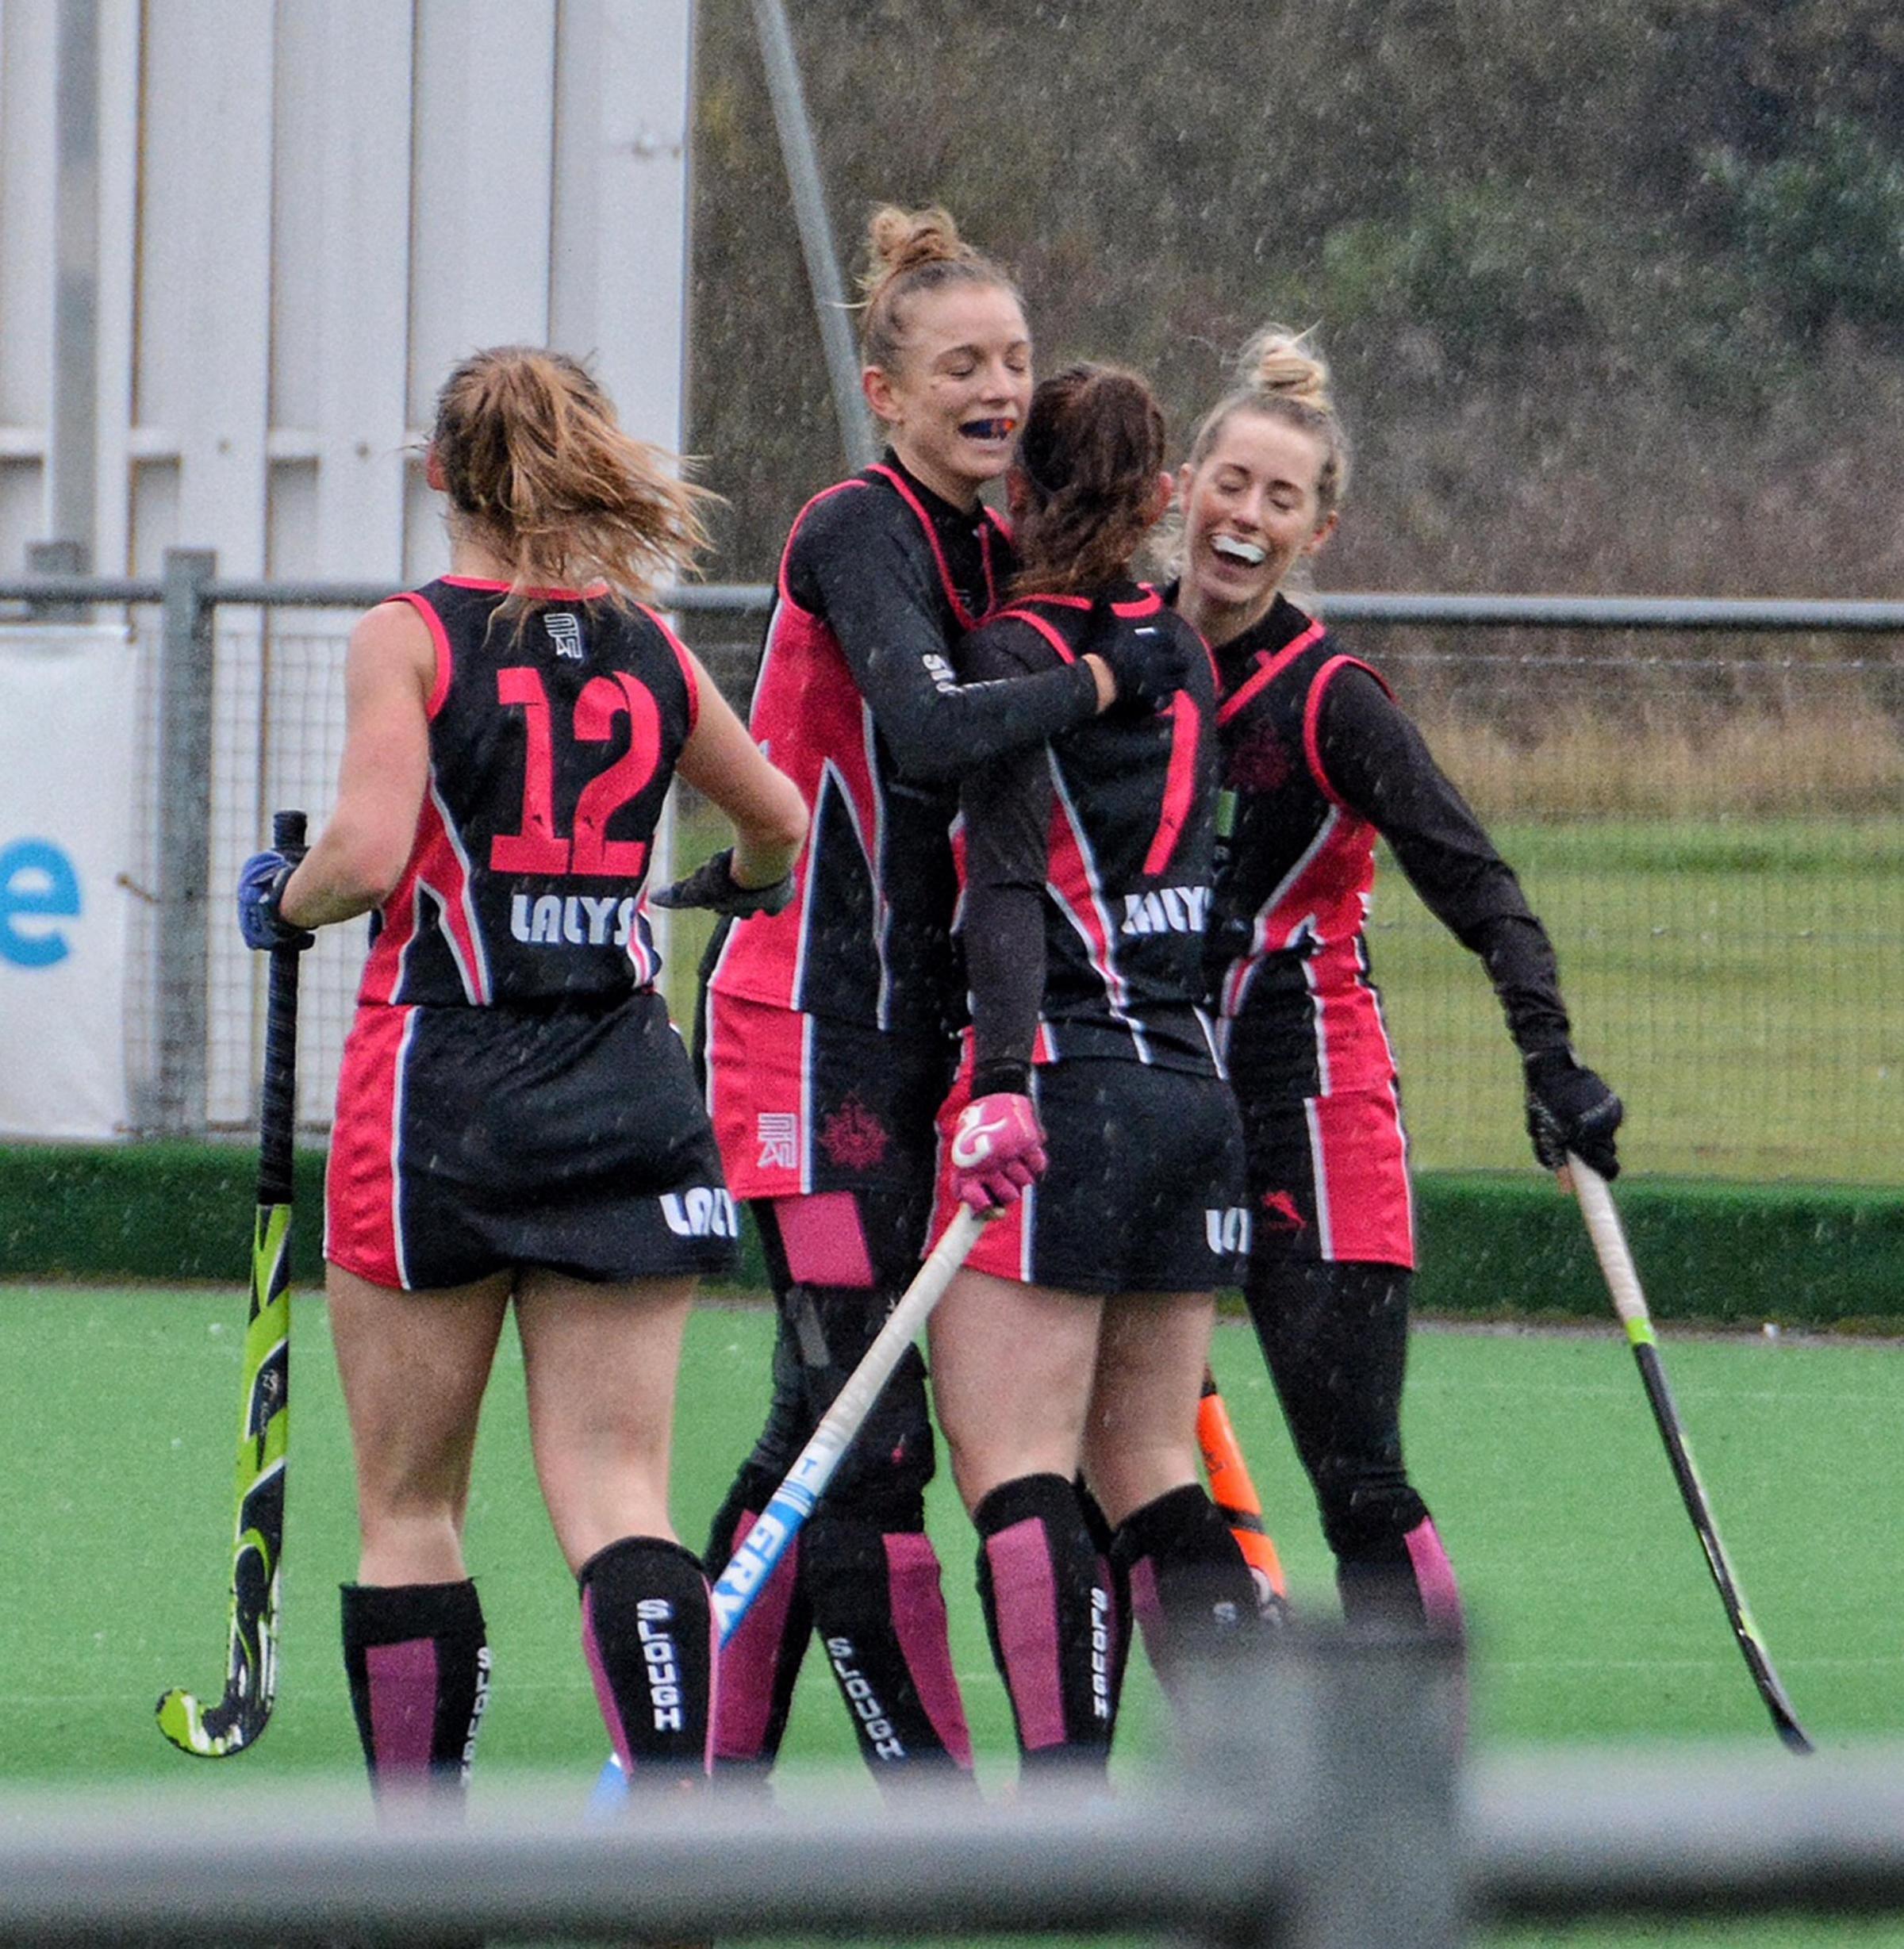 Slough celebrate one of the two goals scored by Amy Sheehan in the 2-2 draw against Clifton Robinsons on Saturday.